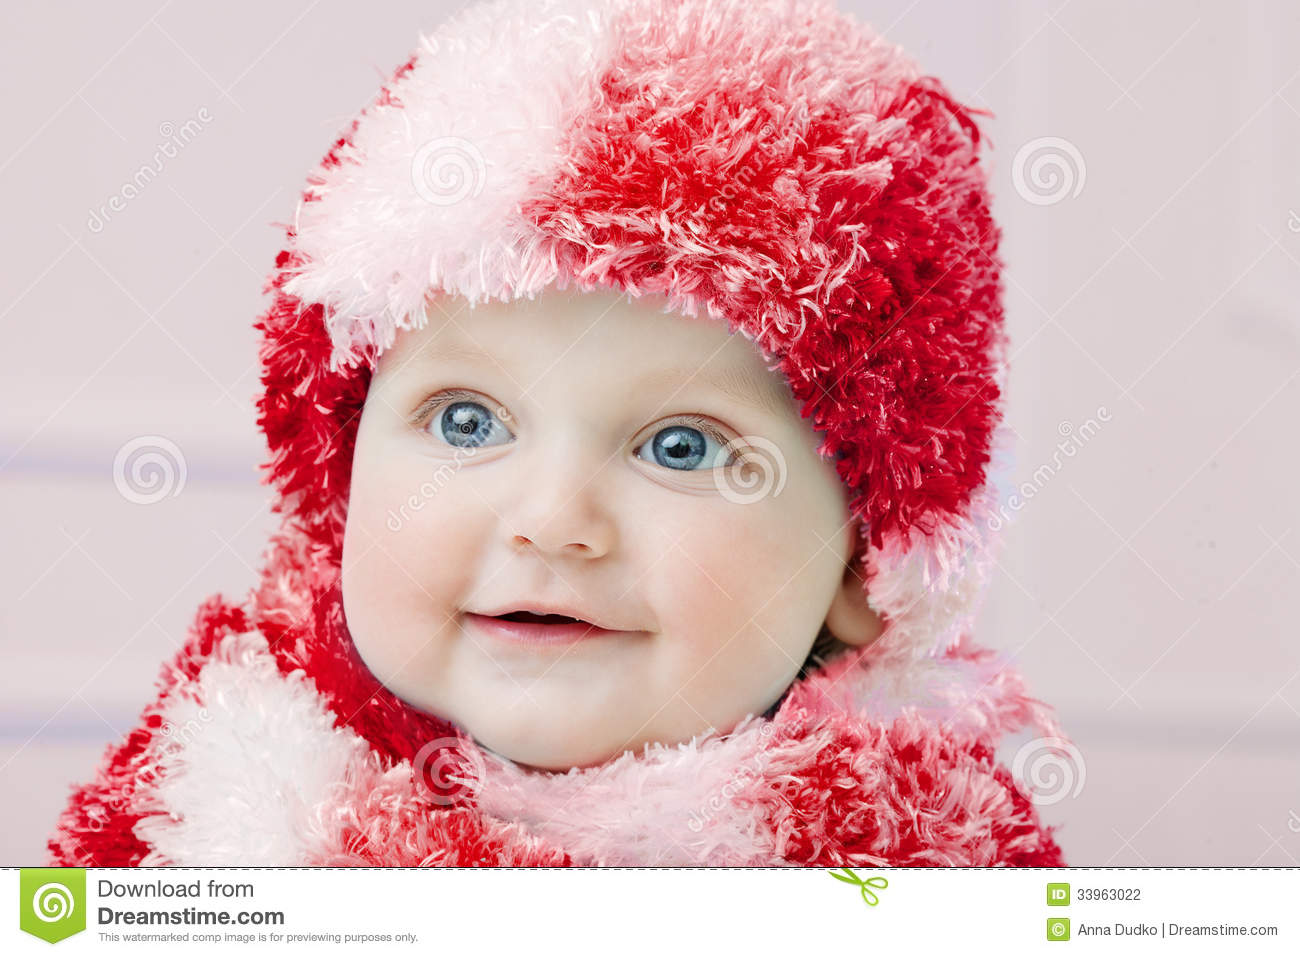 3ab9273e4d4d Cute Baby At Winter Background Stock Photo - Image of healthy ...